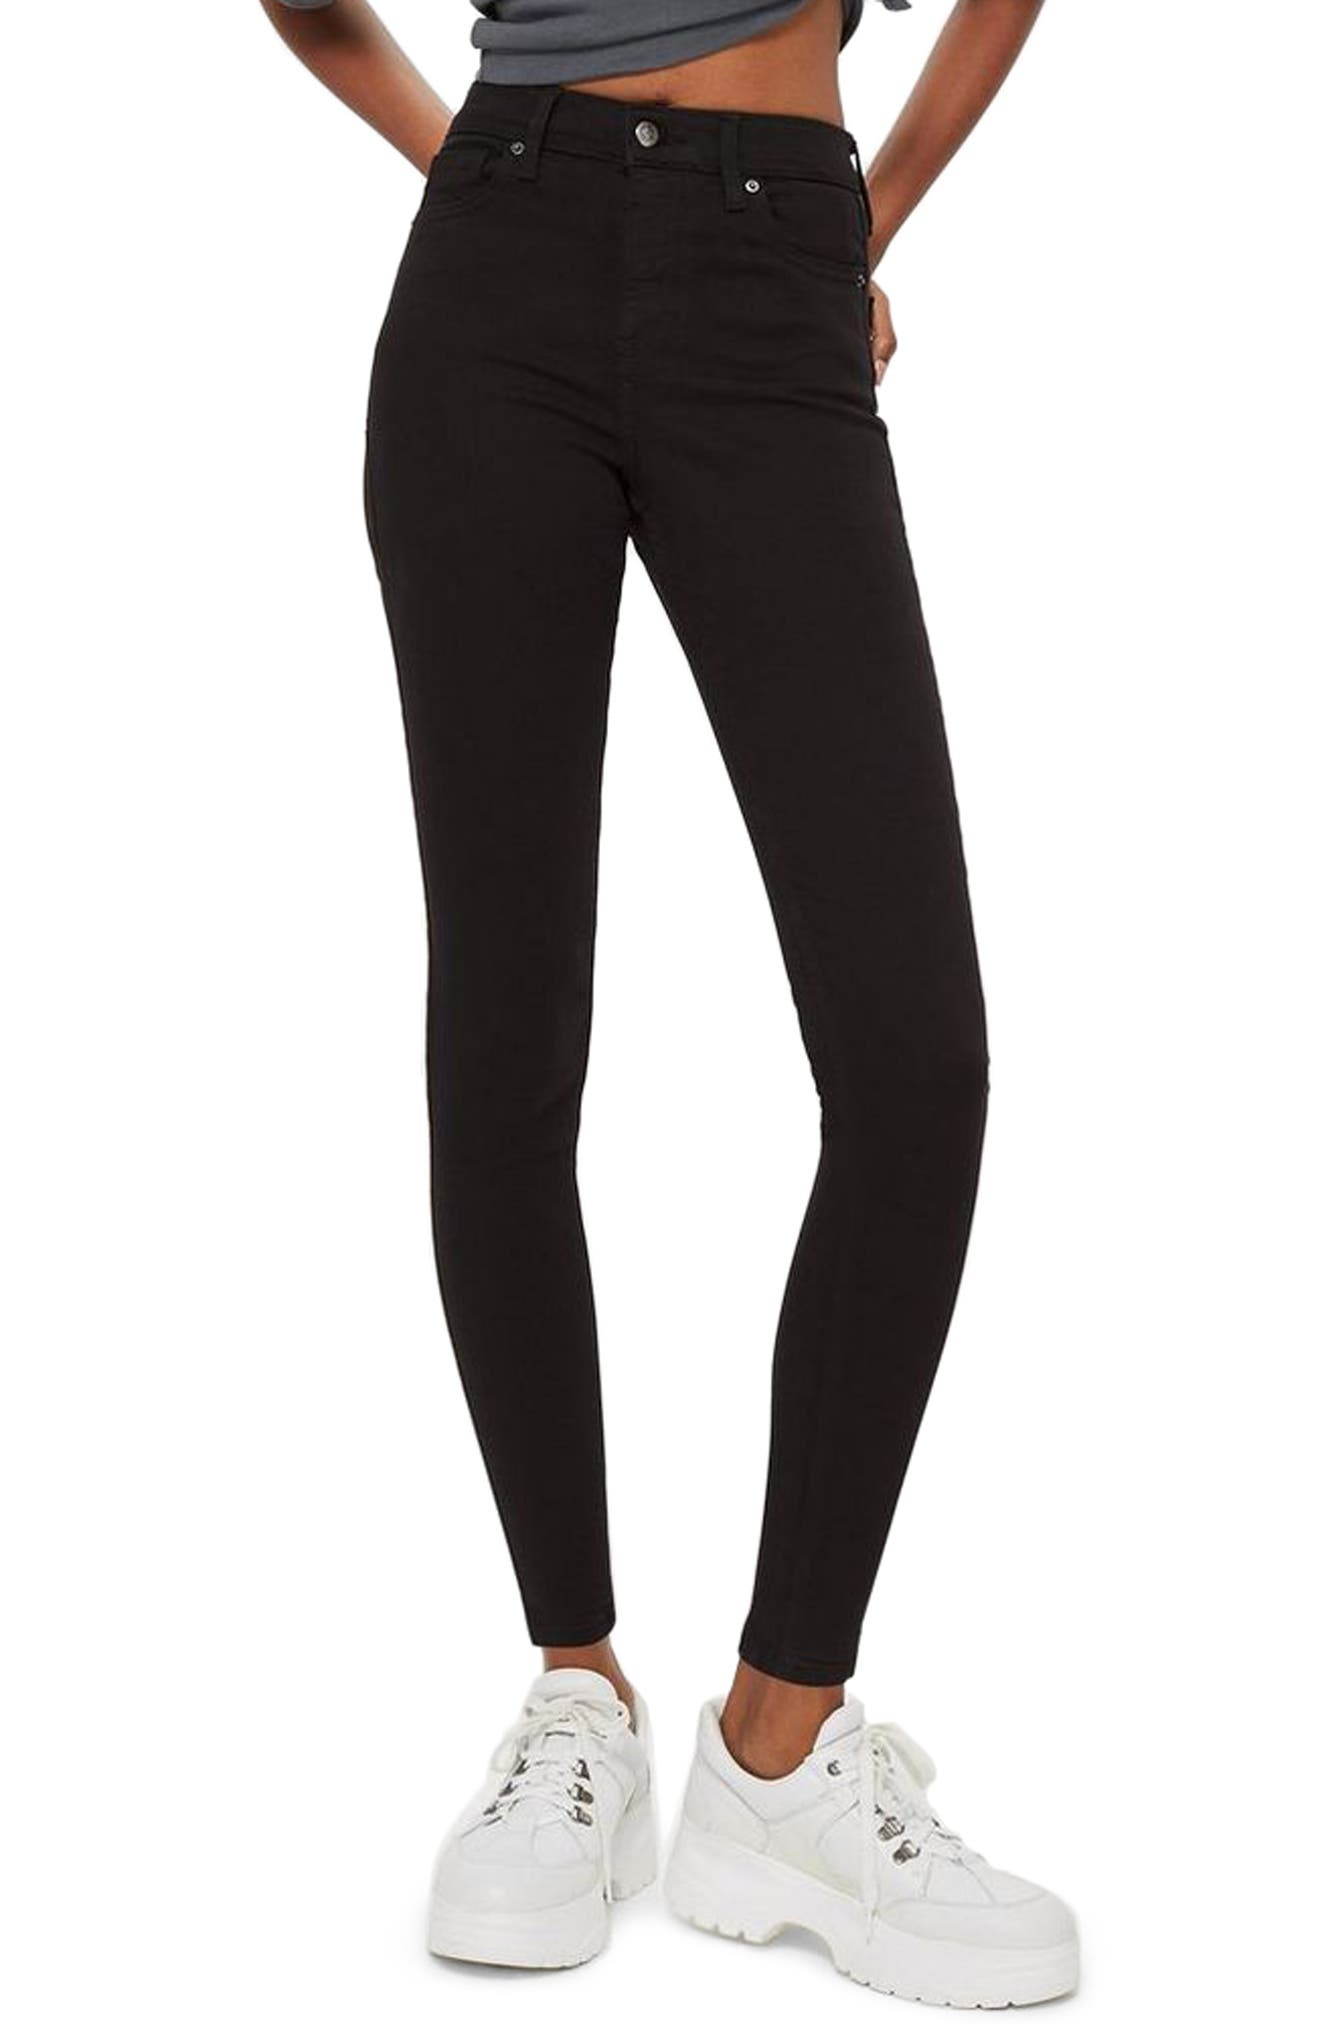 Topshop Jamie High Waist Black Jeans (Regular & Petite)